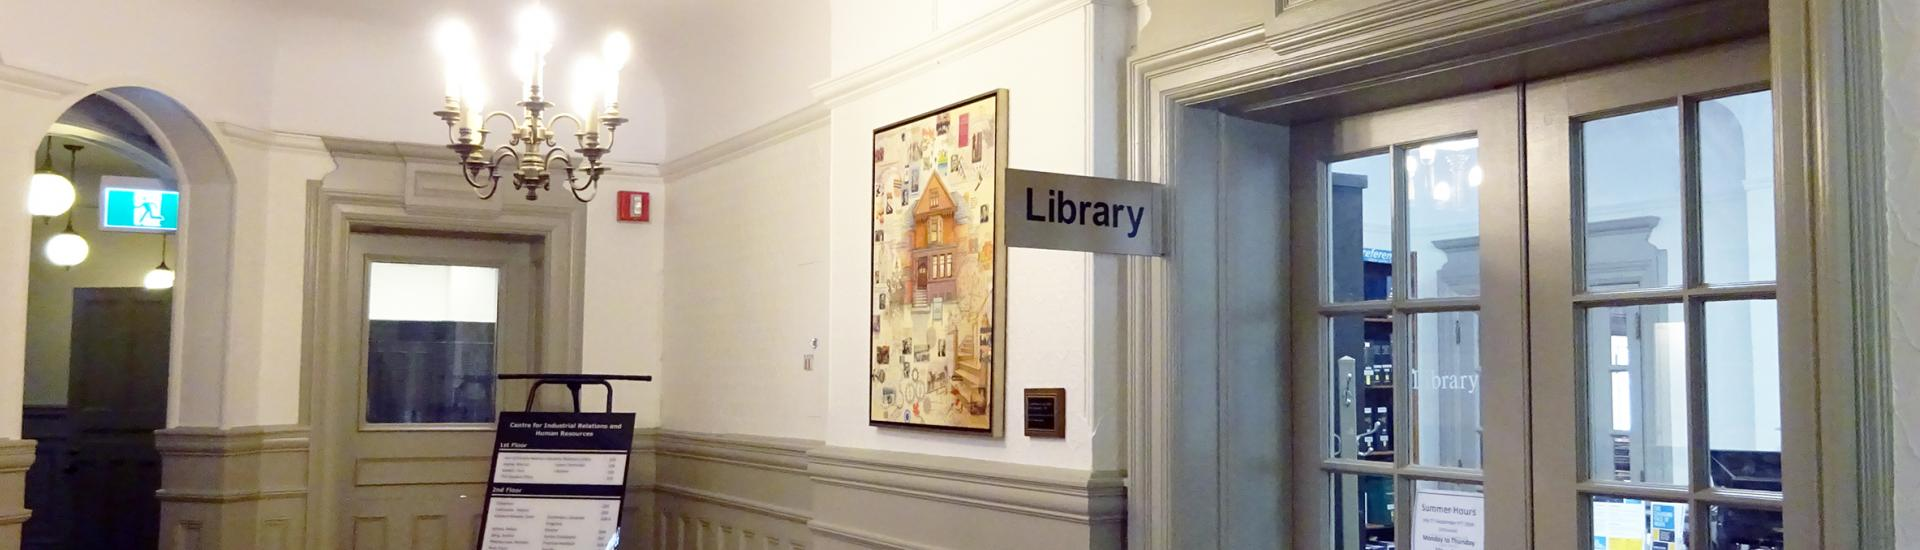 photo of the entrance to the CIRHR library